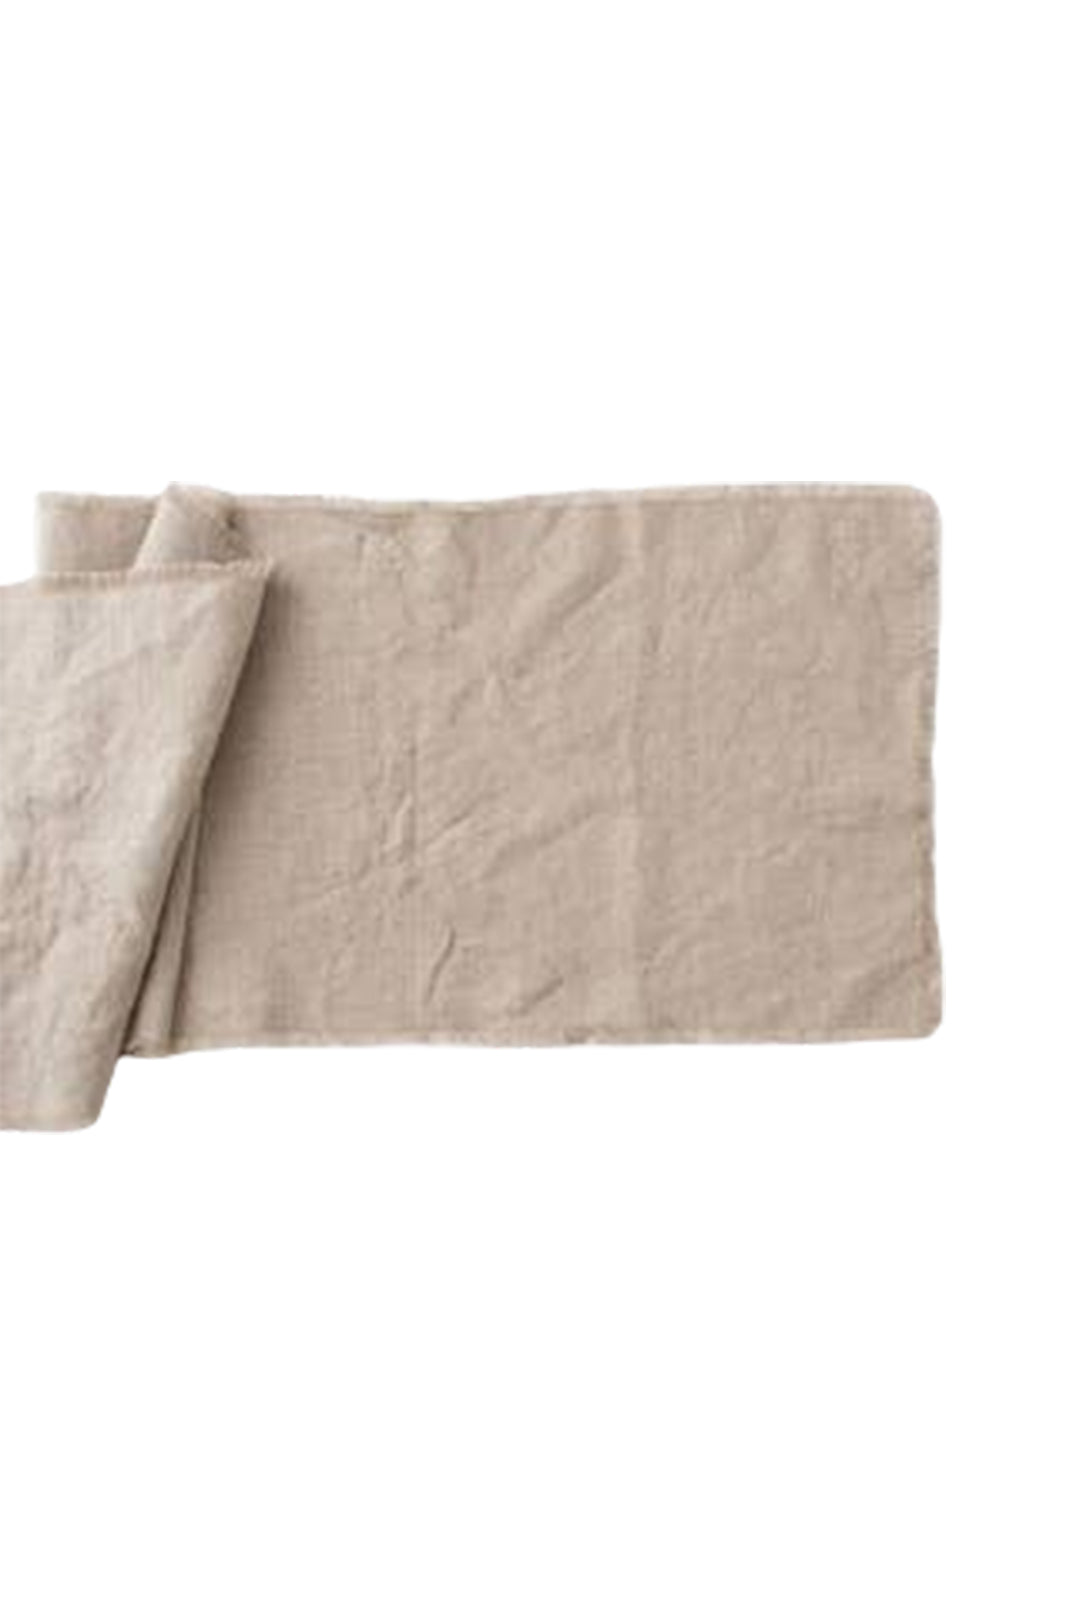 Everyday Linen Table Runner